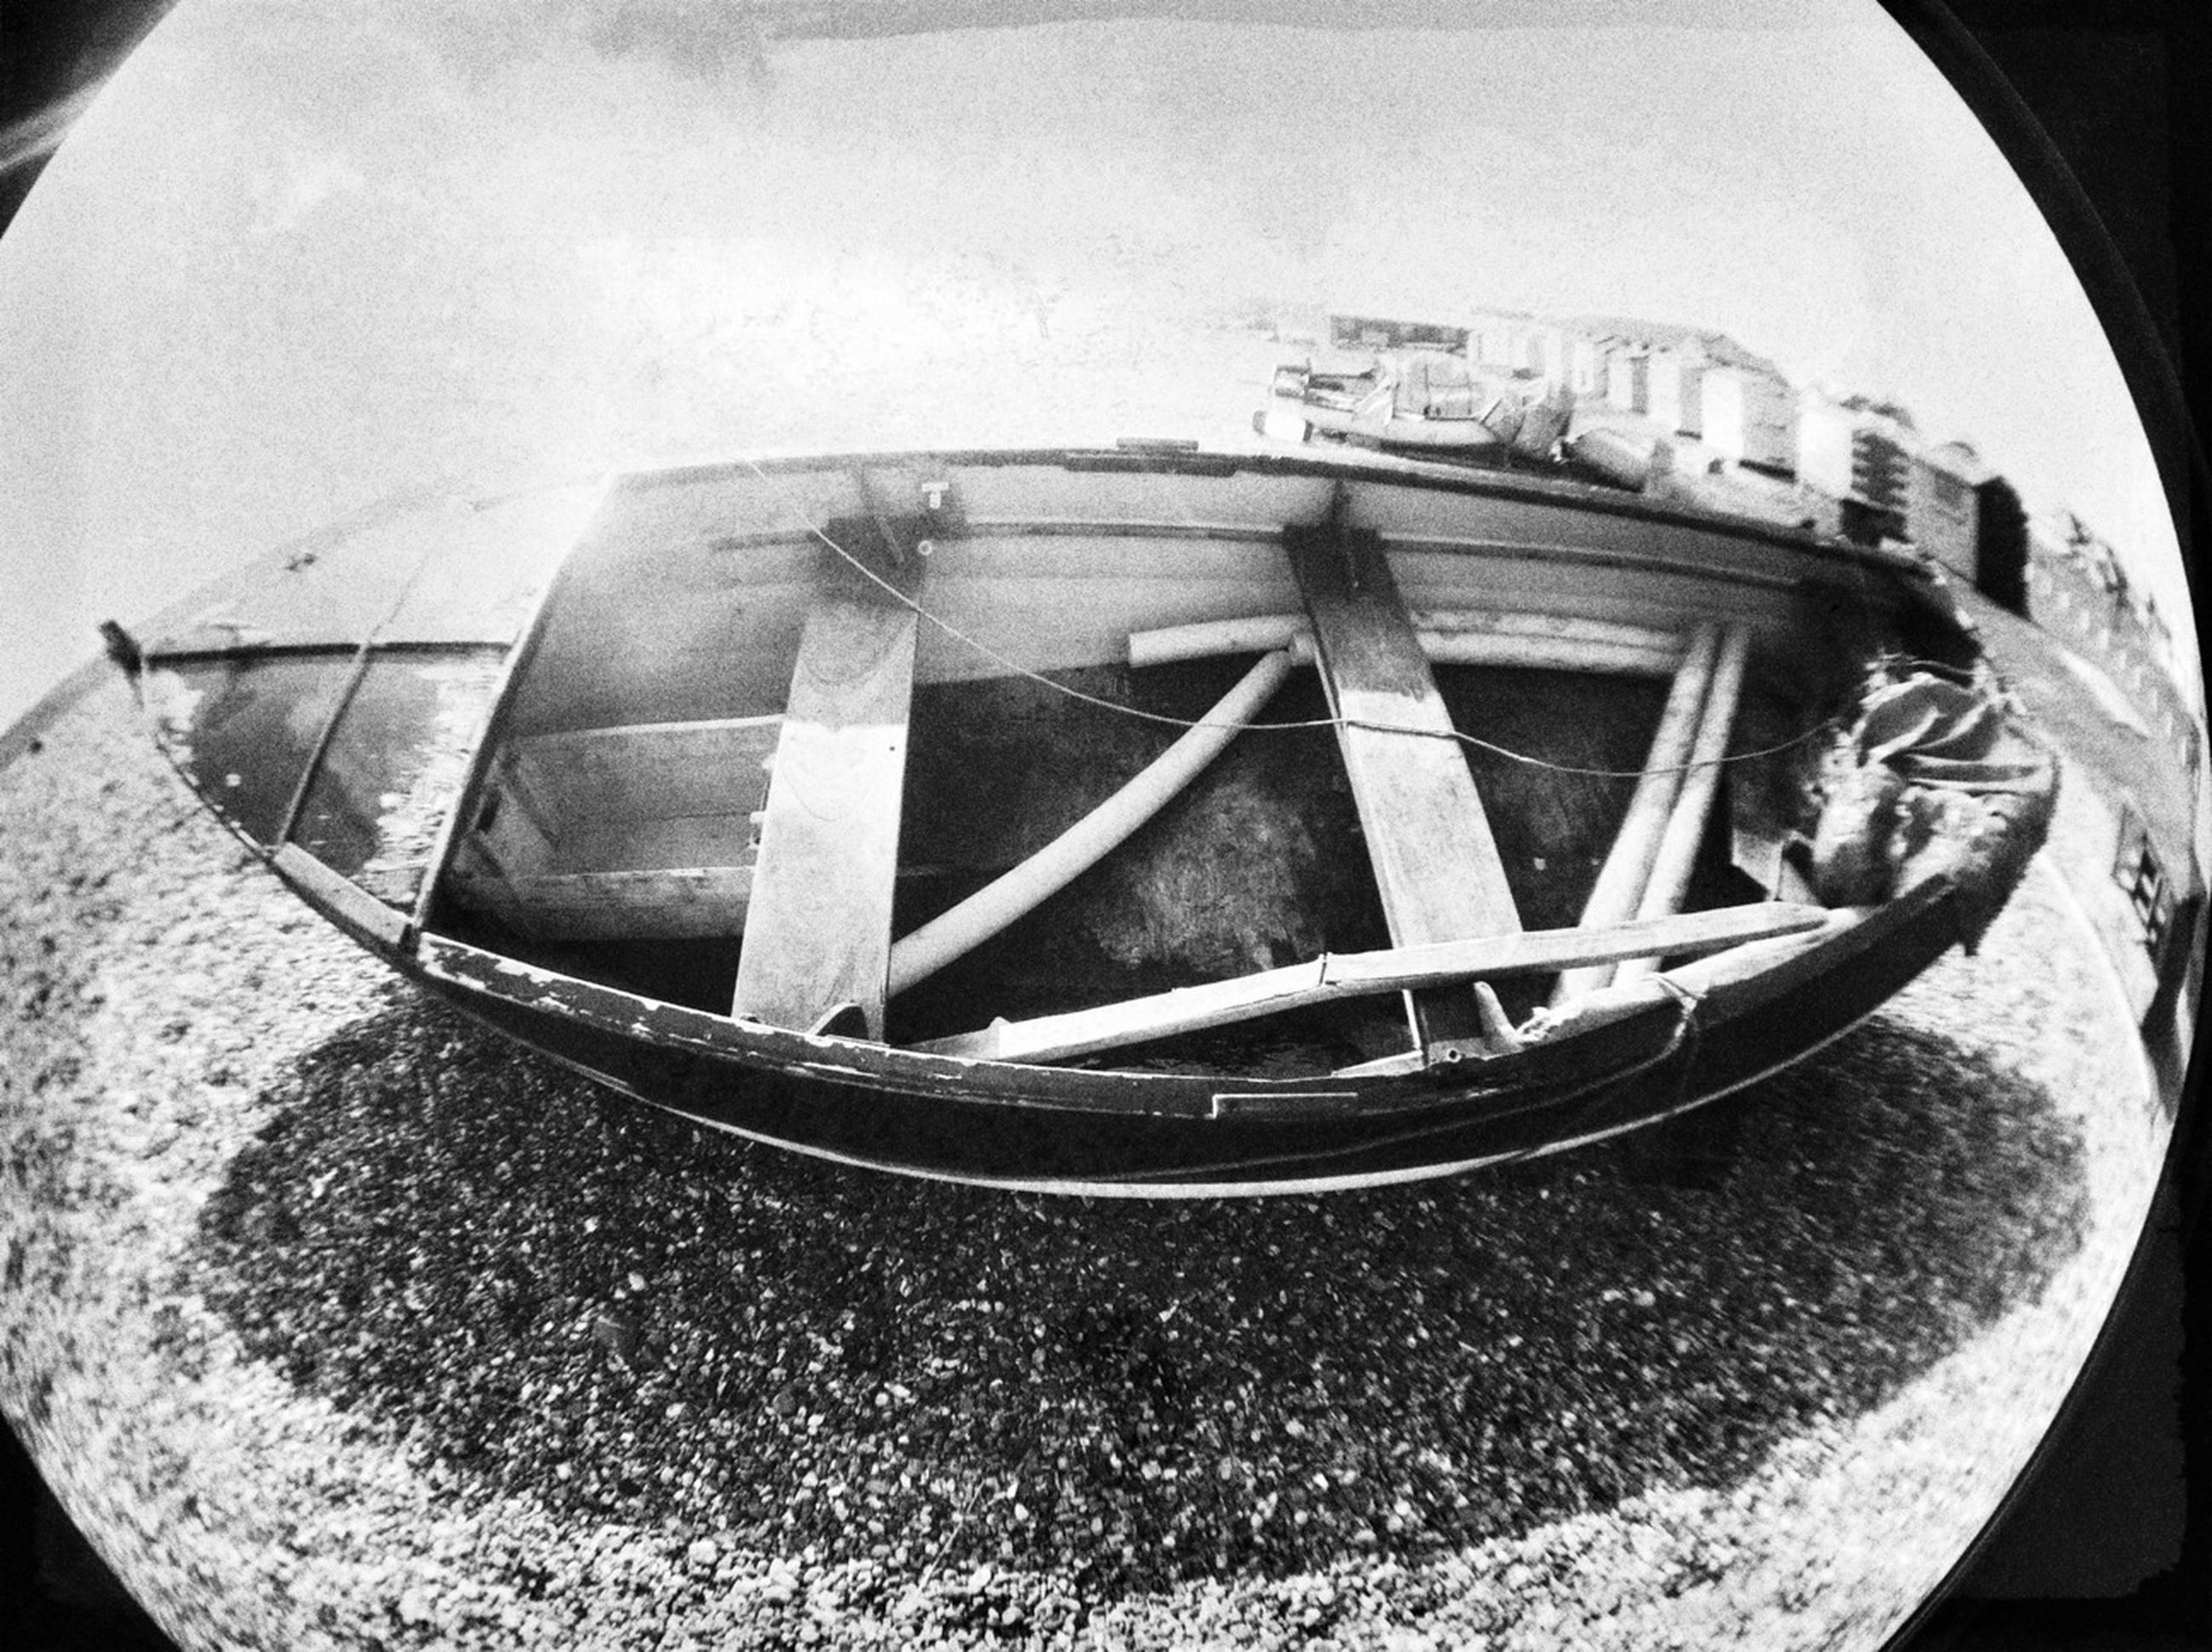 transportation, mode of transport, abandoned, close-up, outdoors, day, sky, nautical vessel, no people, car, boat, obsolete, western script, reflection, clear sky, damaged, text, land vehicle, fish-eye lens, sunlight